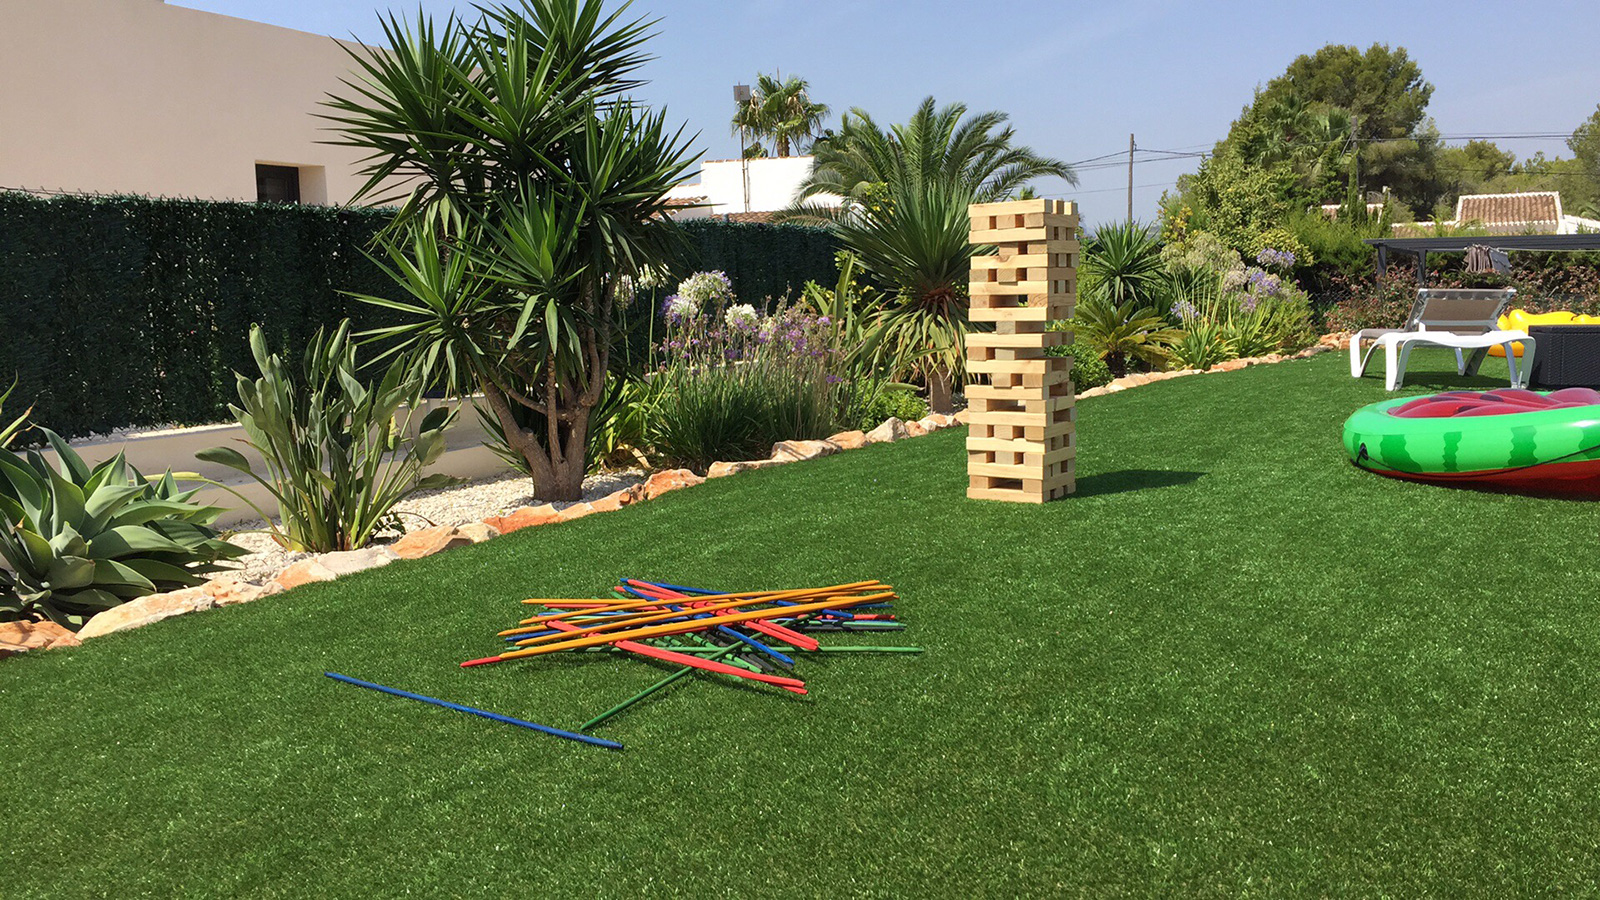 villa-holiday-in-spain-garden-games